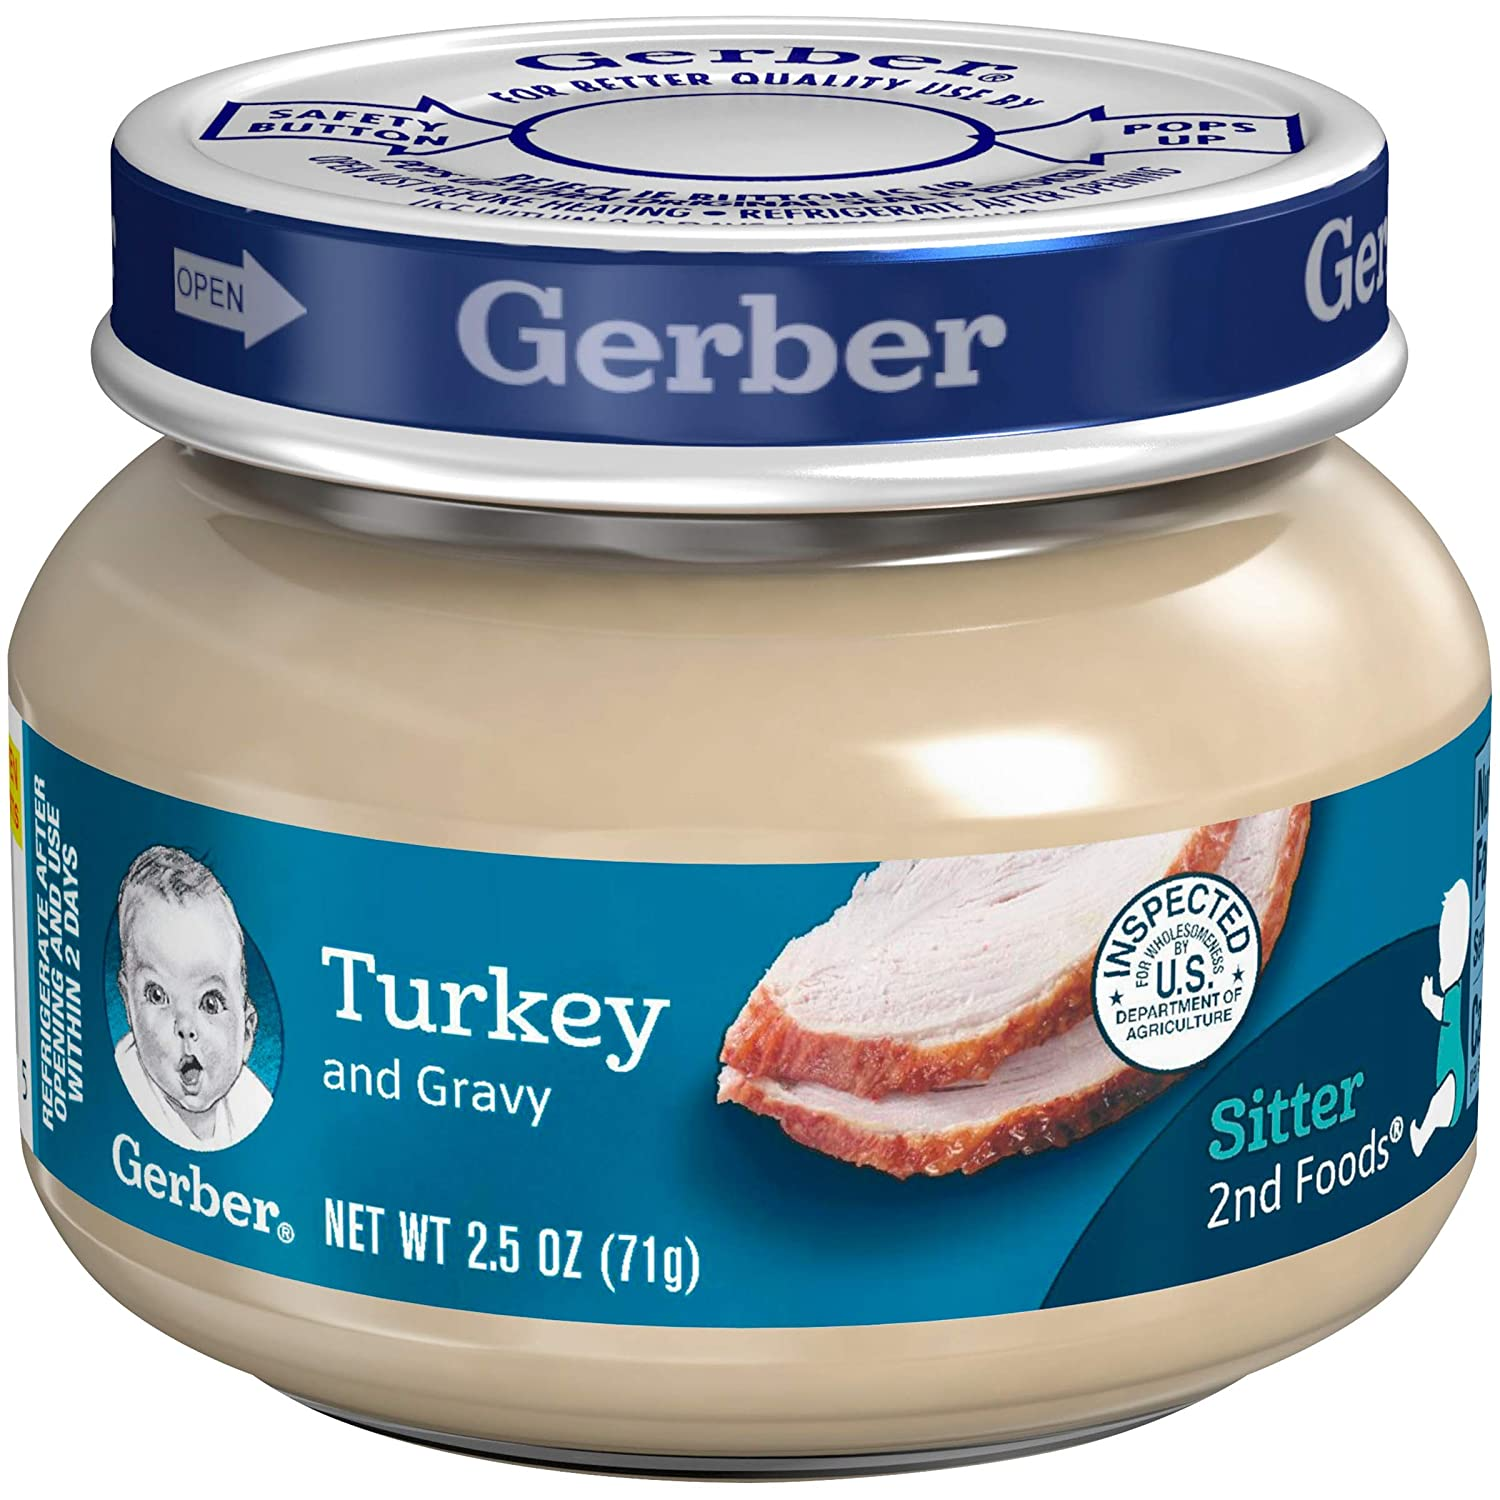 Gerber Purees 2nd Foods Turkey & Gravy, 2.5 Ounce Jars (Pack of 20)